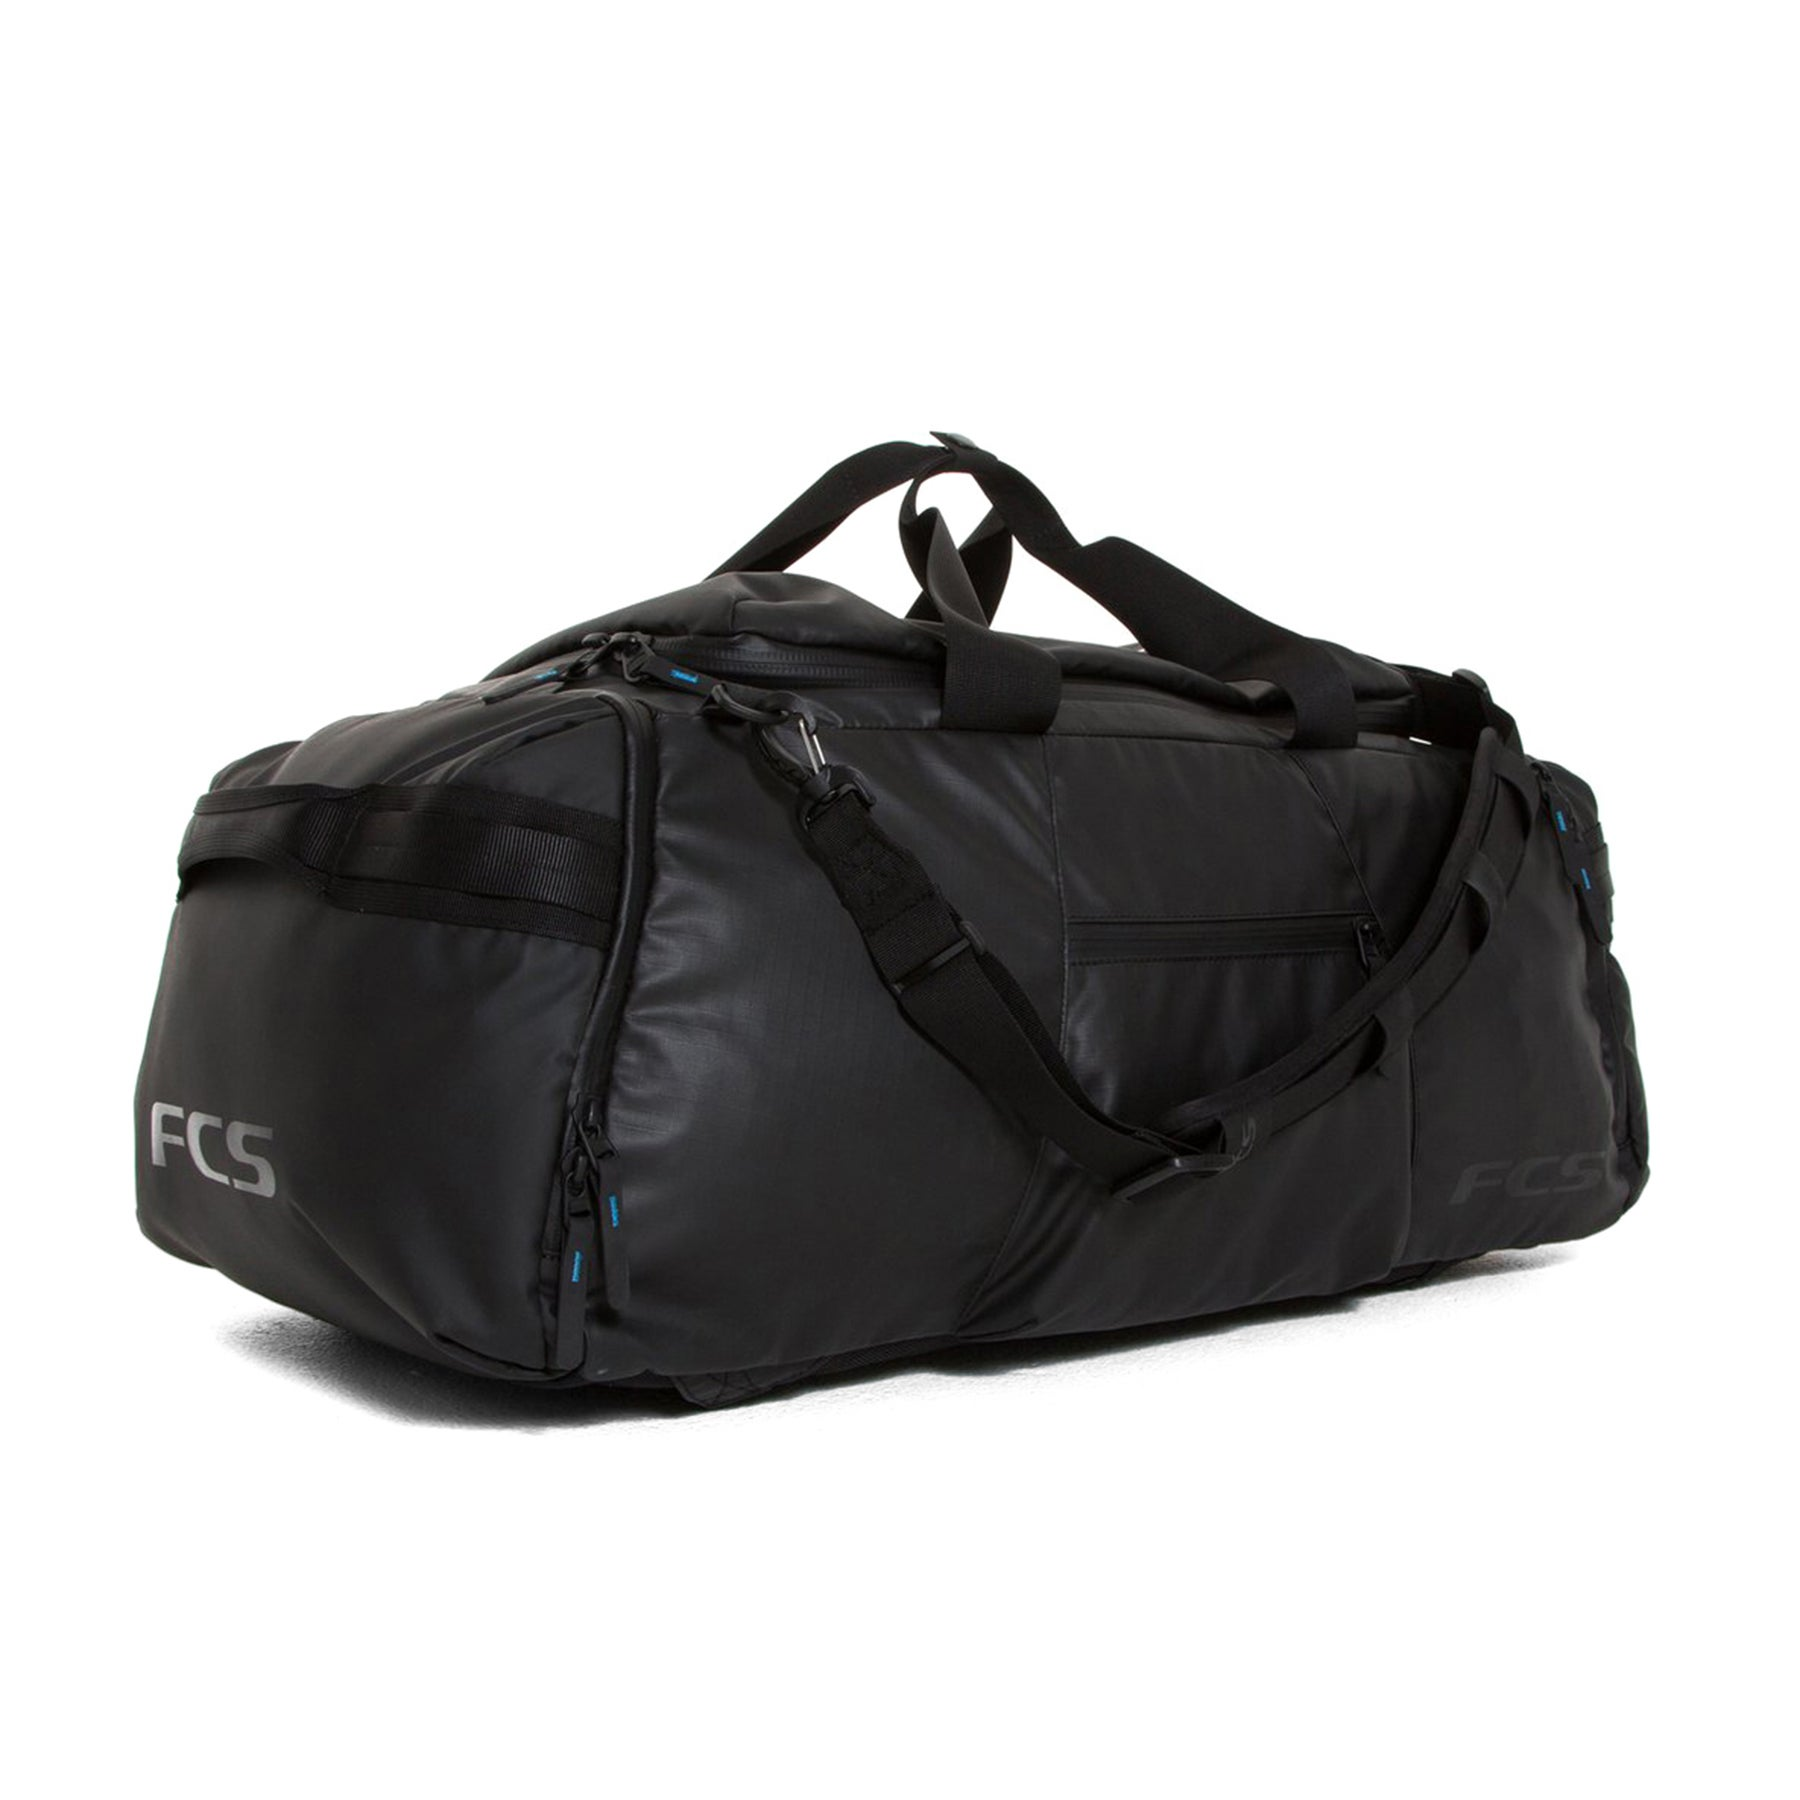 FCS Essentials Duffel Surf Backpack